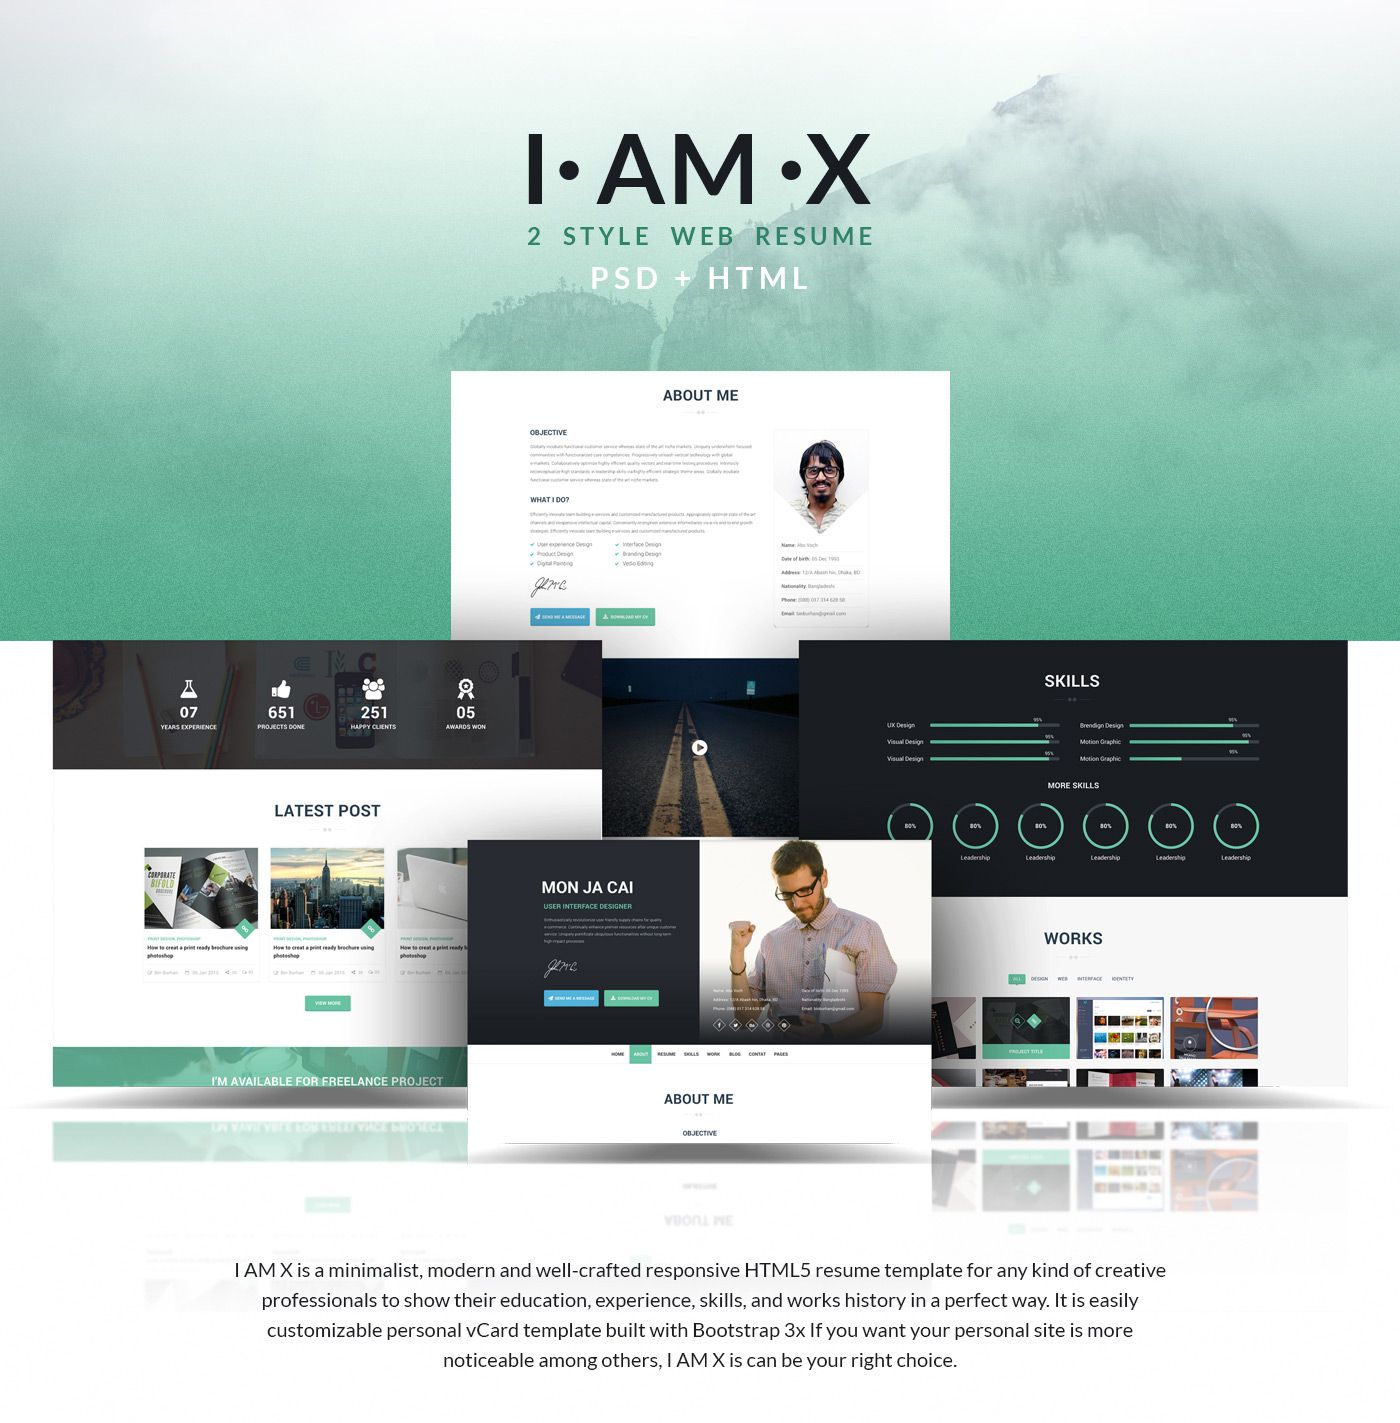 Resume Website Impressive IAMX Freebie Web Resume Template PSDHTML On Behance